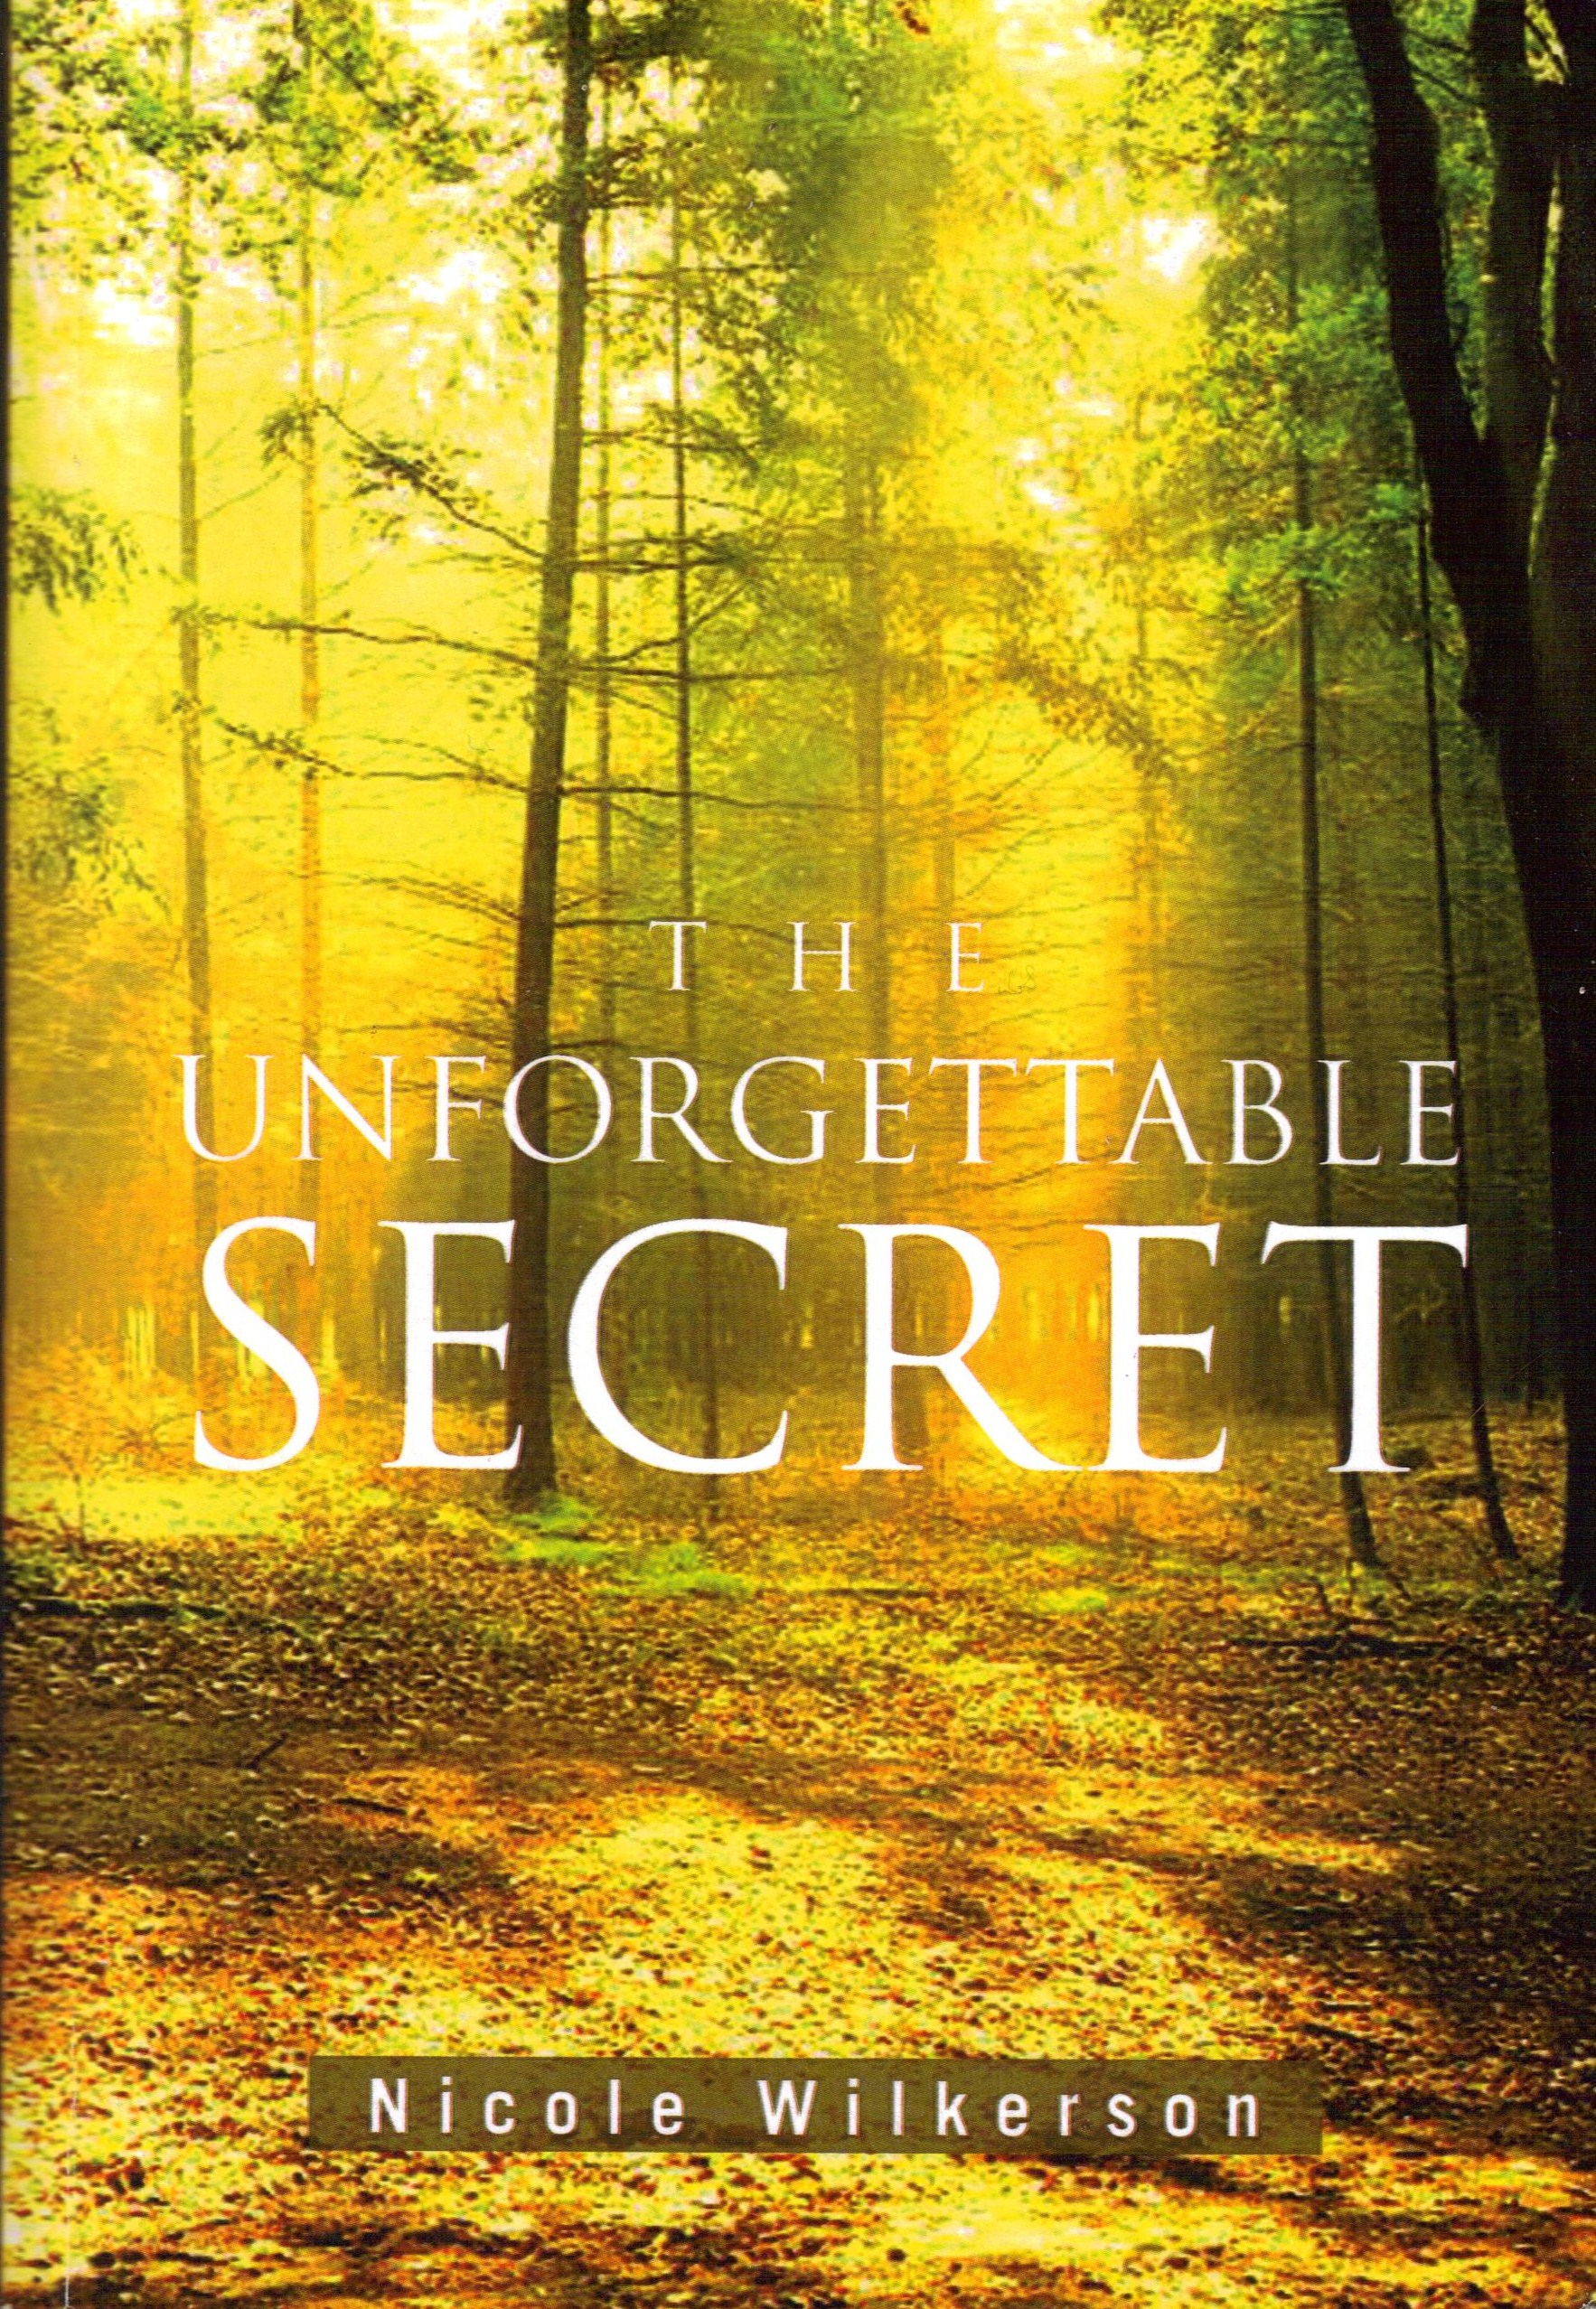 The Unforgettable Secret